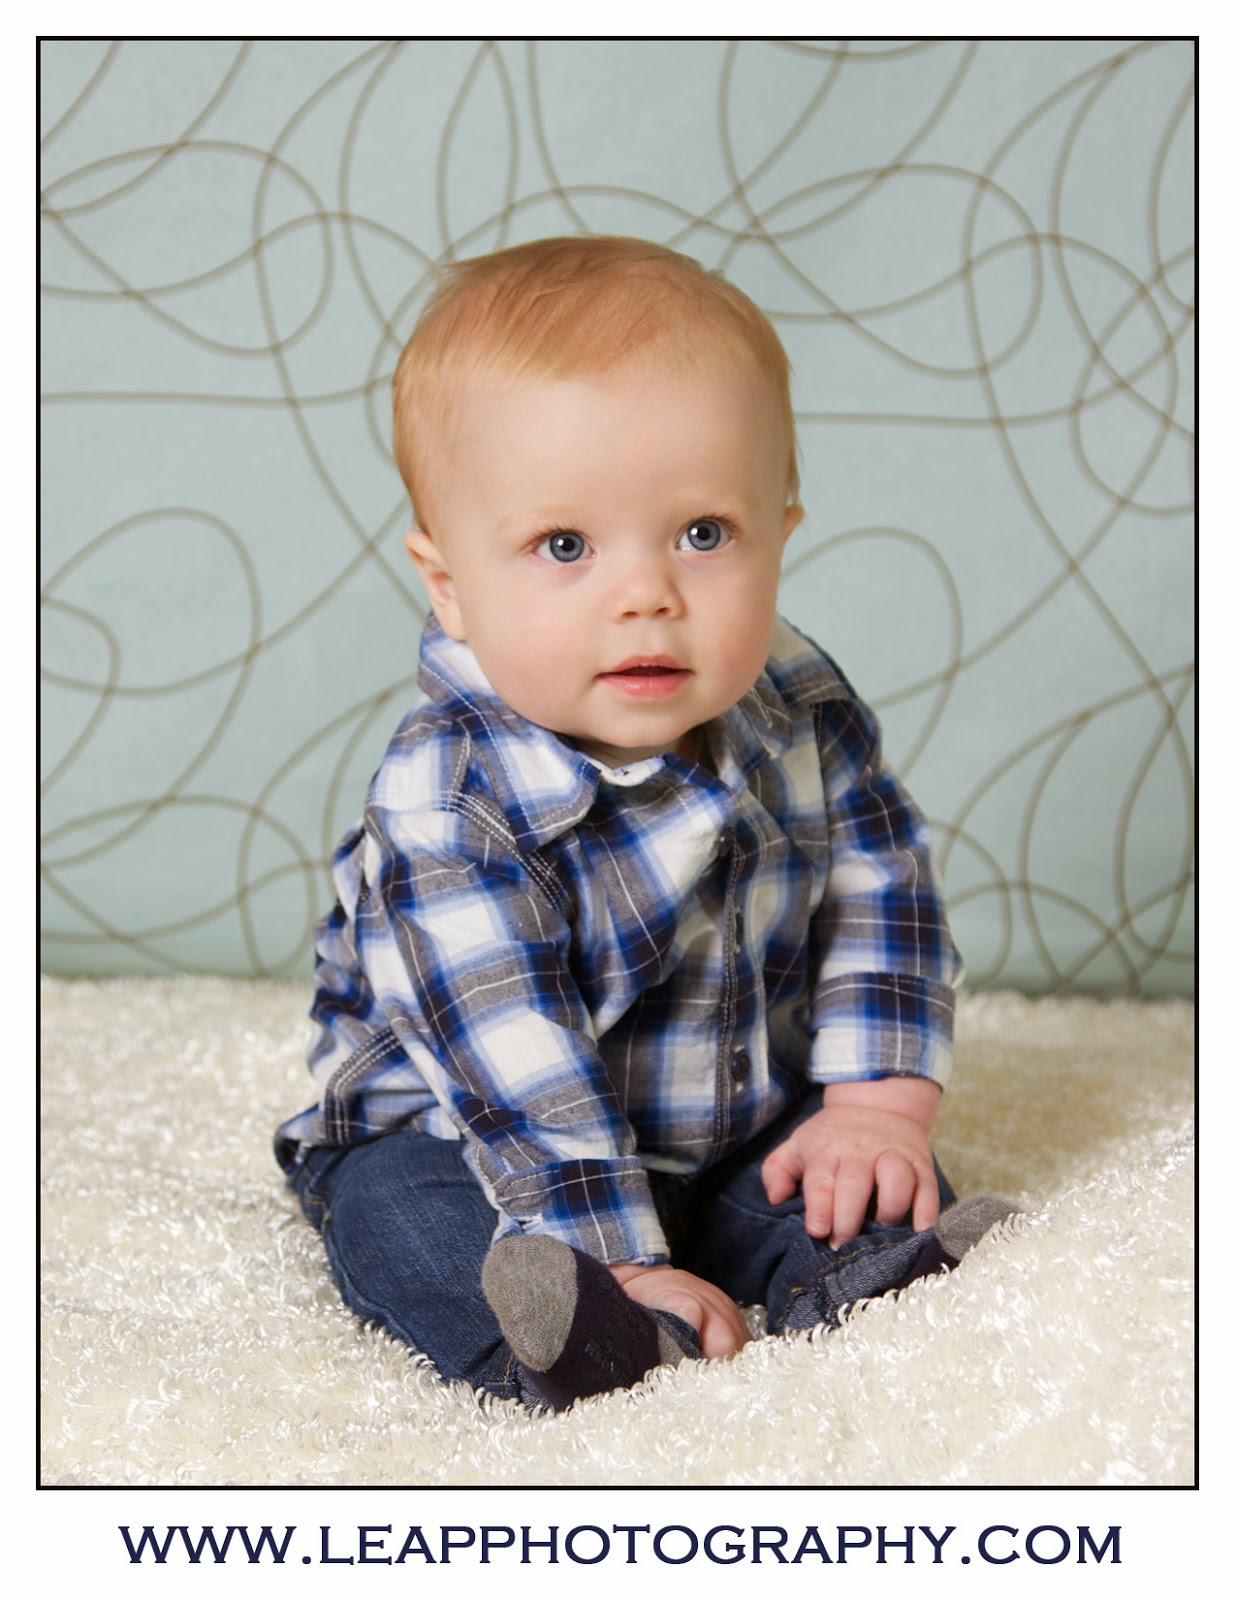 7 month old boy portrait